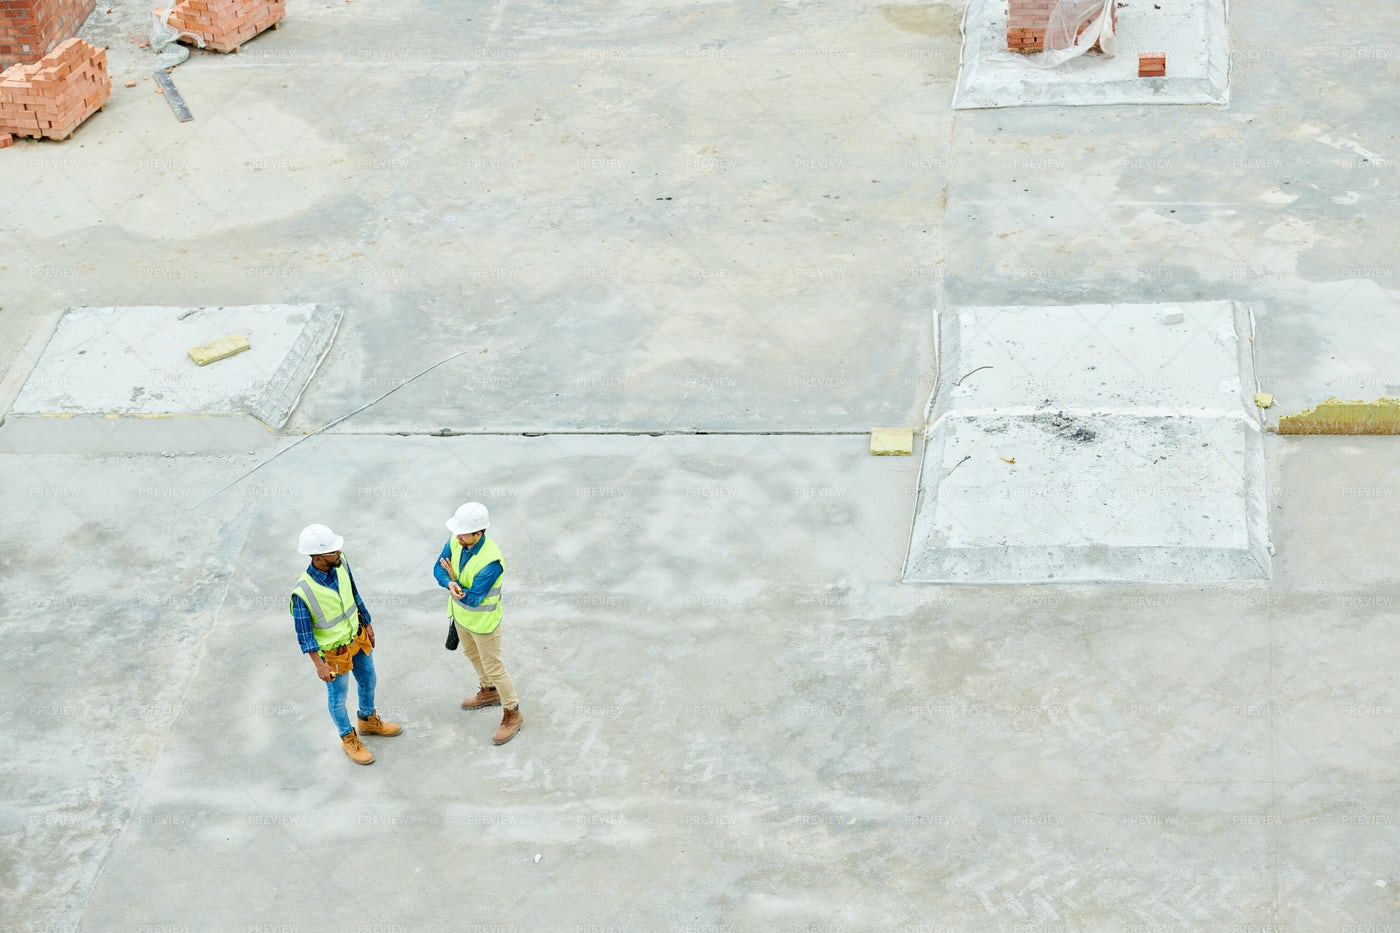 Construction Workers  On Site Above...: Stock Photos